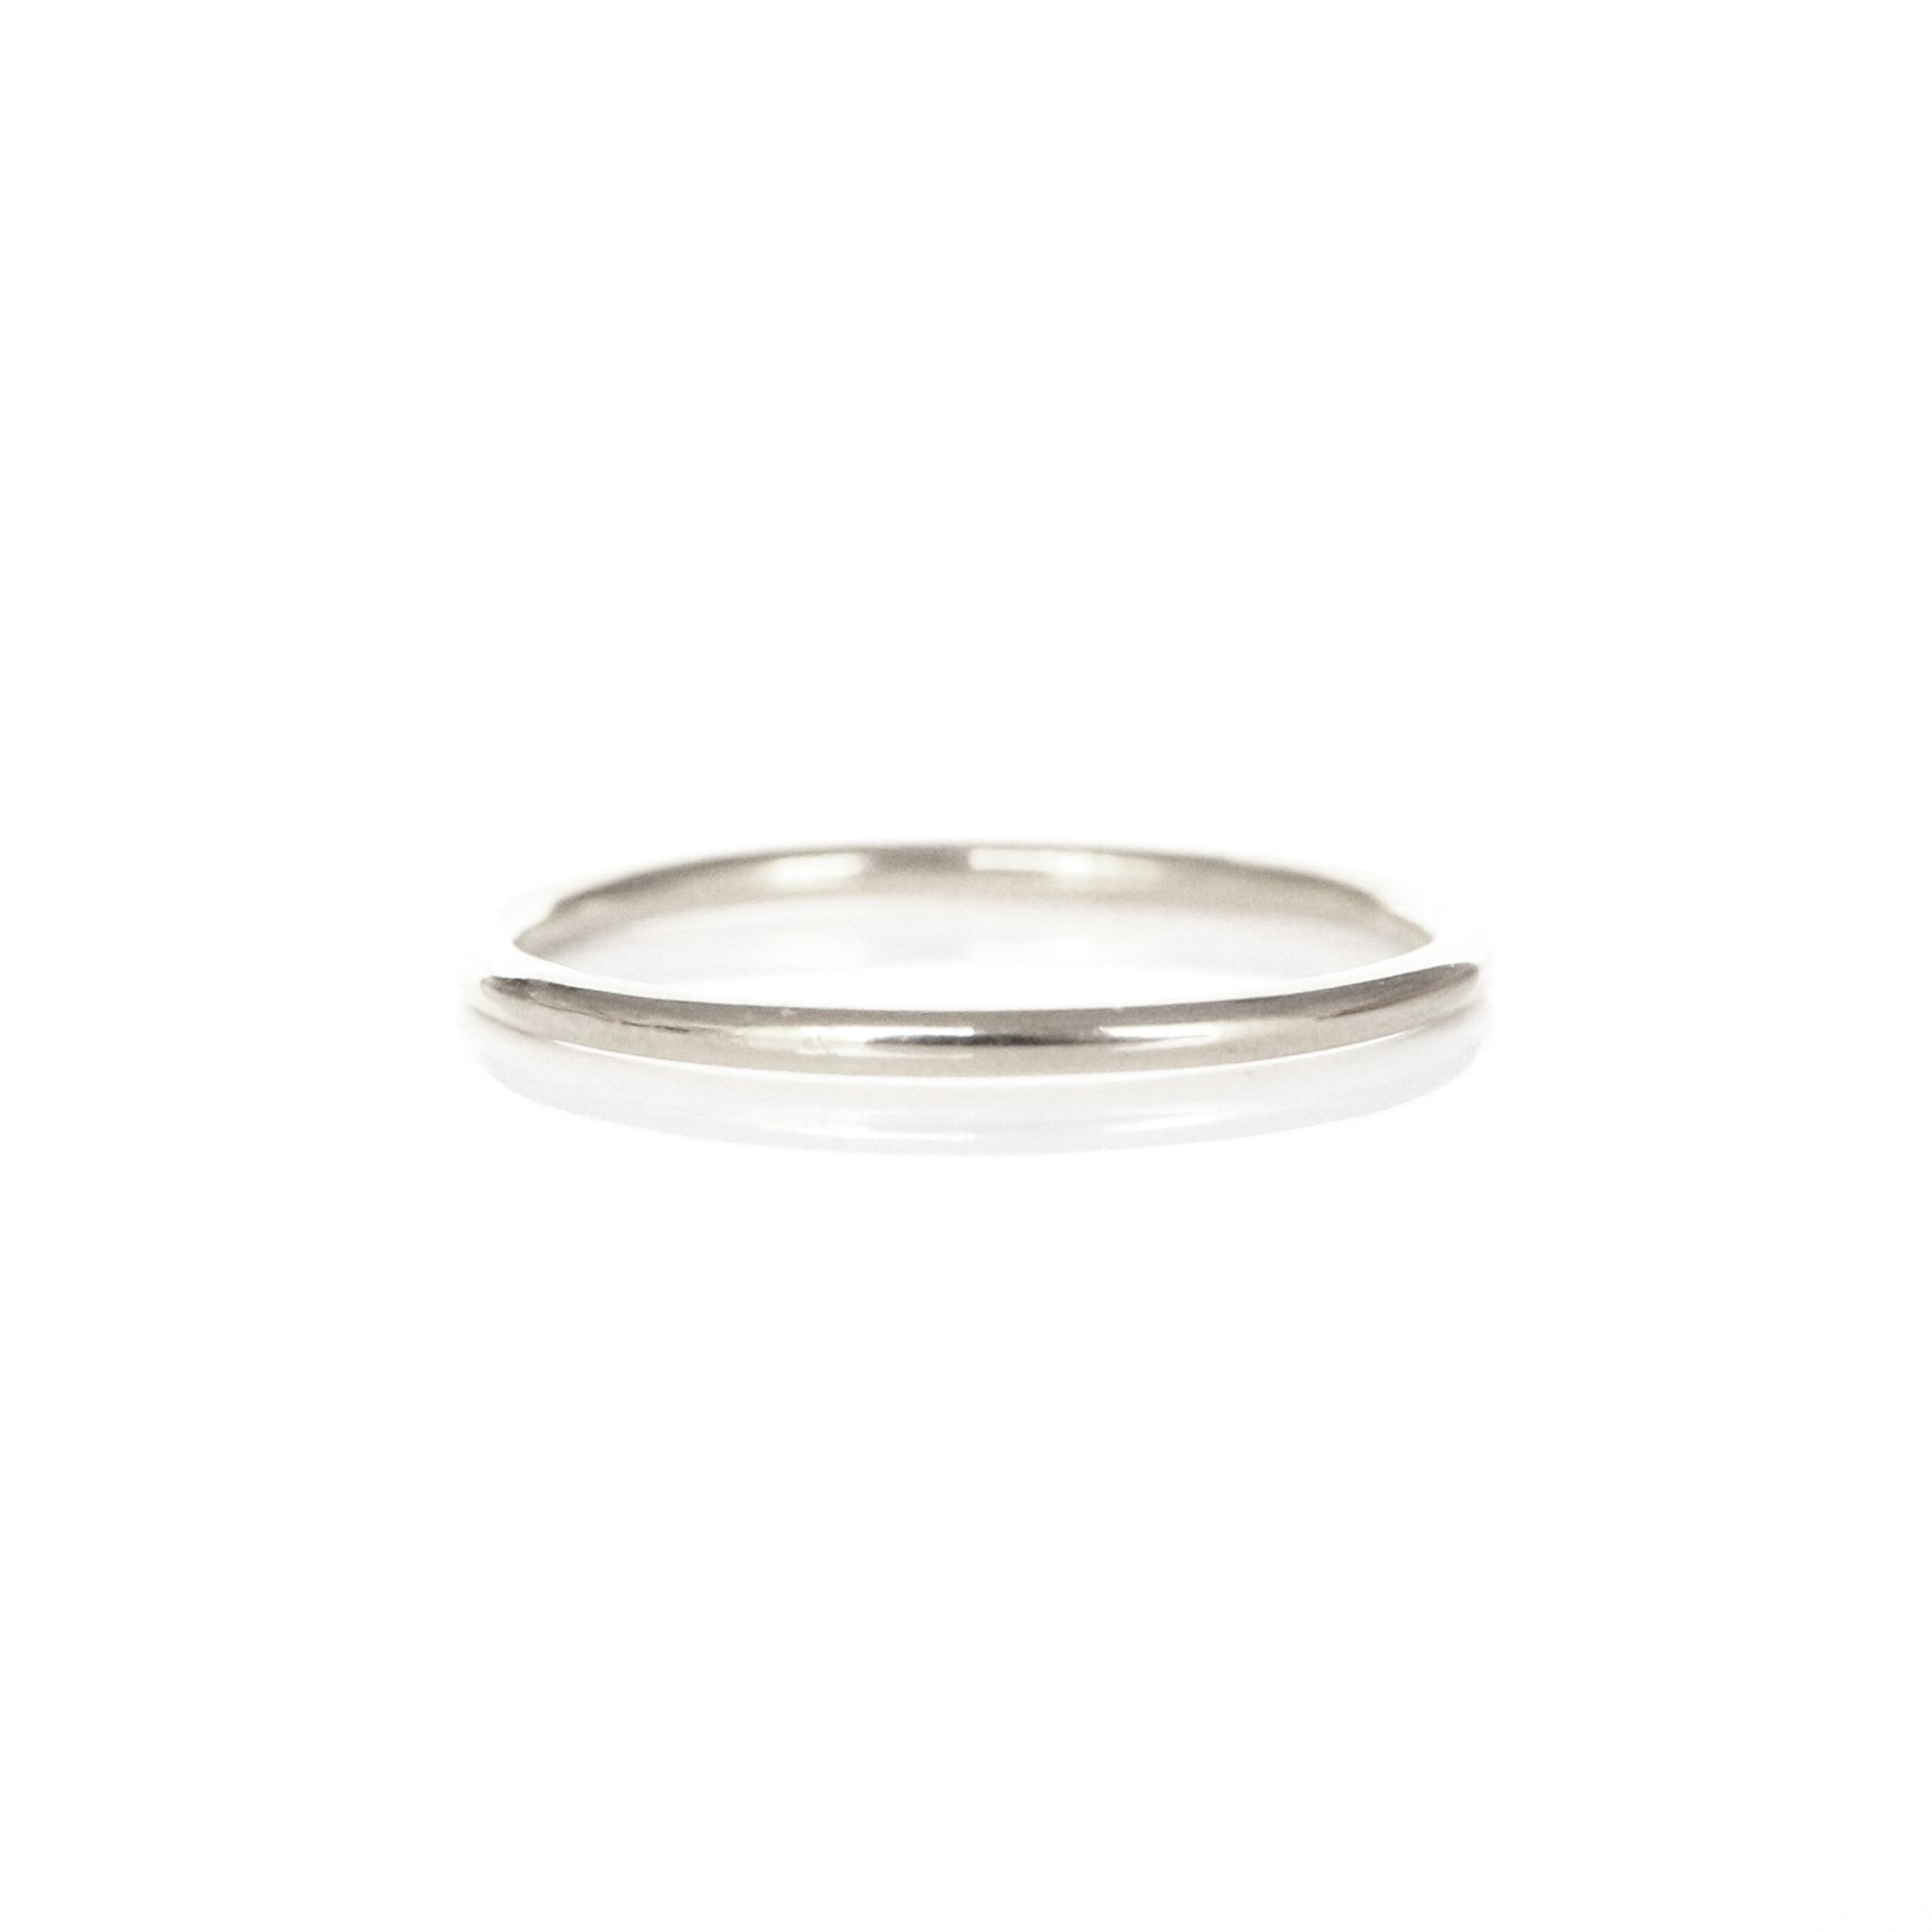 POISE THIN BAND RING - SILVER - SO PRETTY CARA COTTER